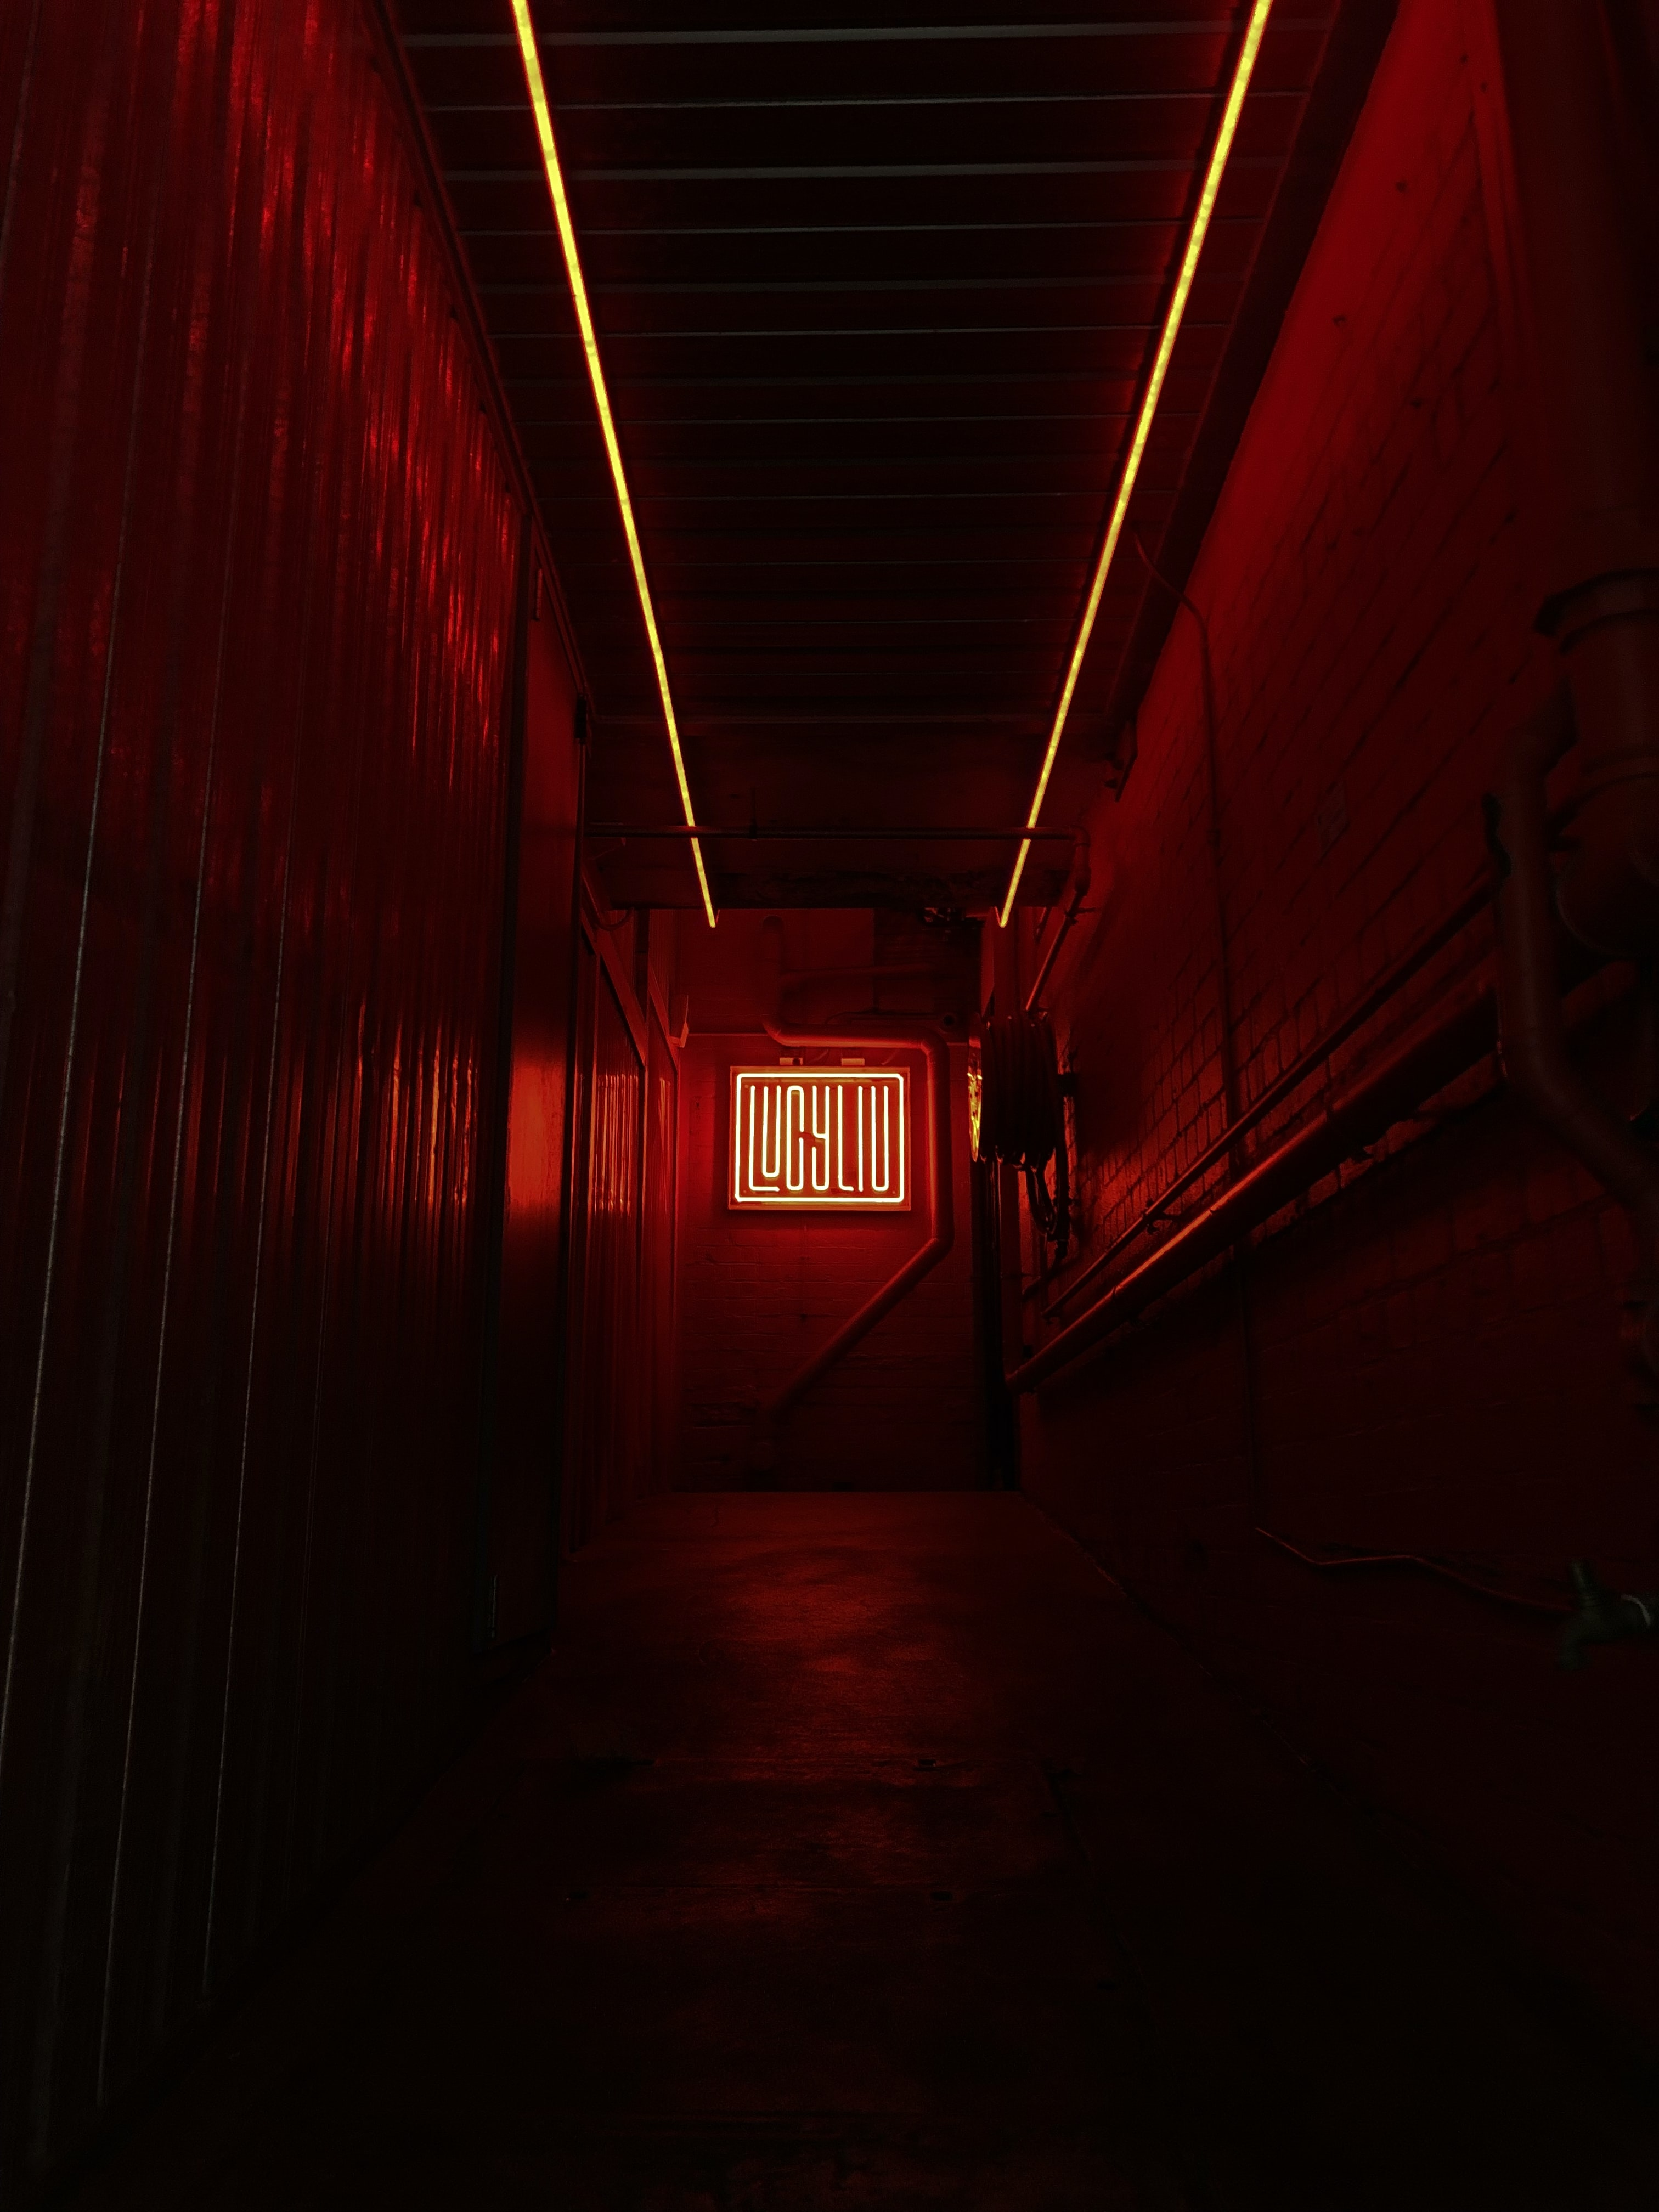 red illuminated sign